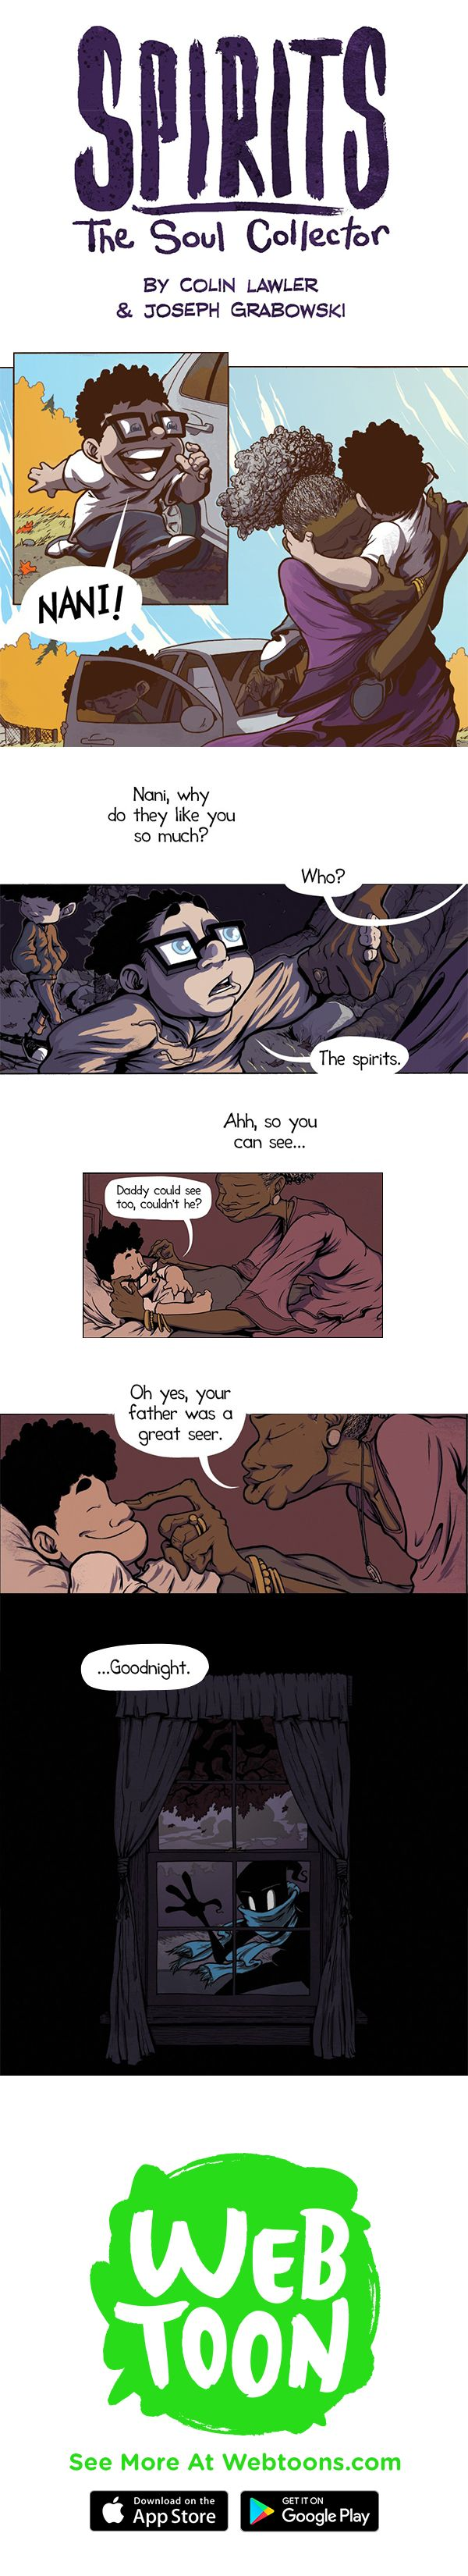 Two young brothers discover a dark and mystical family secret, in Spirits. New each Friday, only on Webtoons.com.